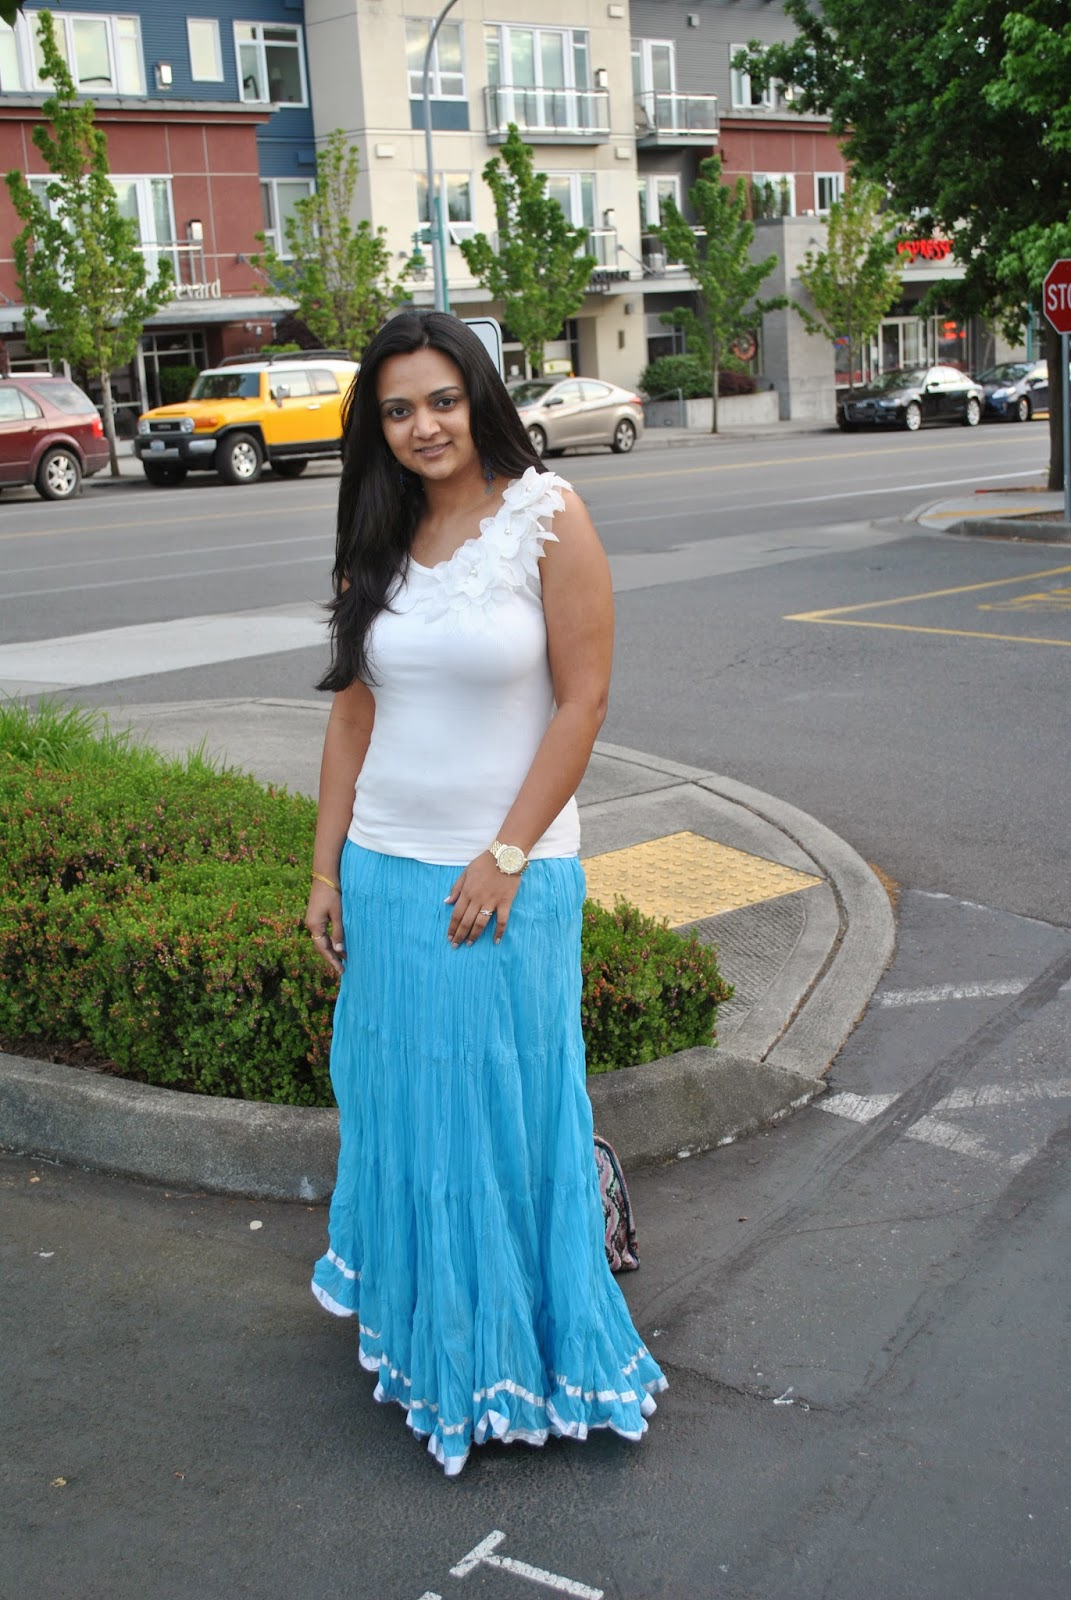 Seattle fashion blogger, Model wearing long skirts, Girl wearing long skirts, Indian summer dress tips, fashionable yet decent summer clothes, blue skirt and white top